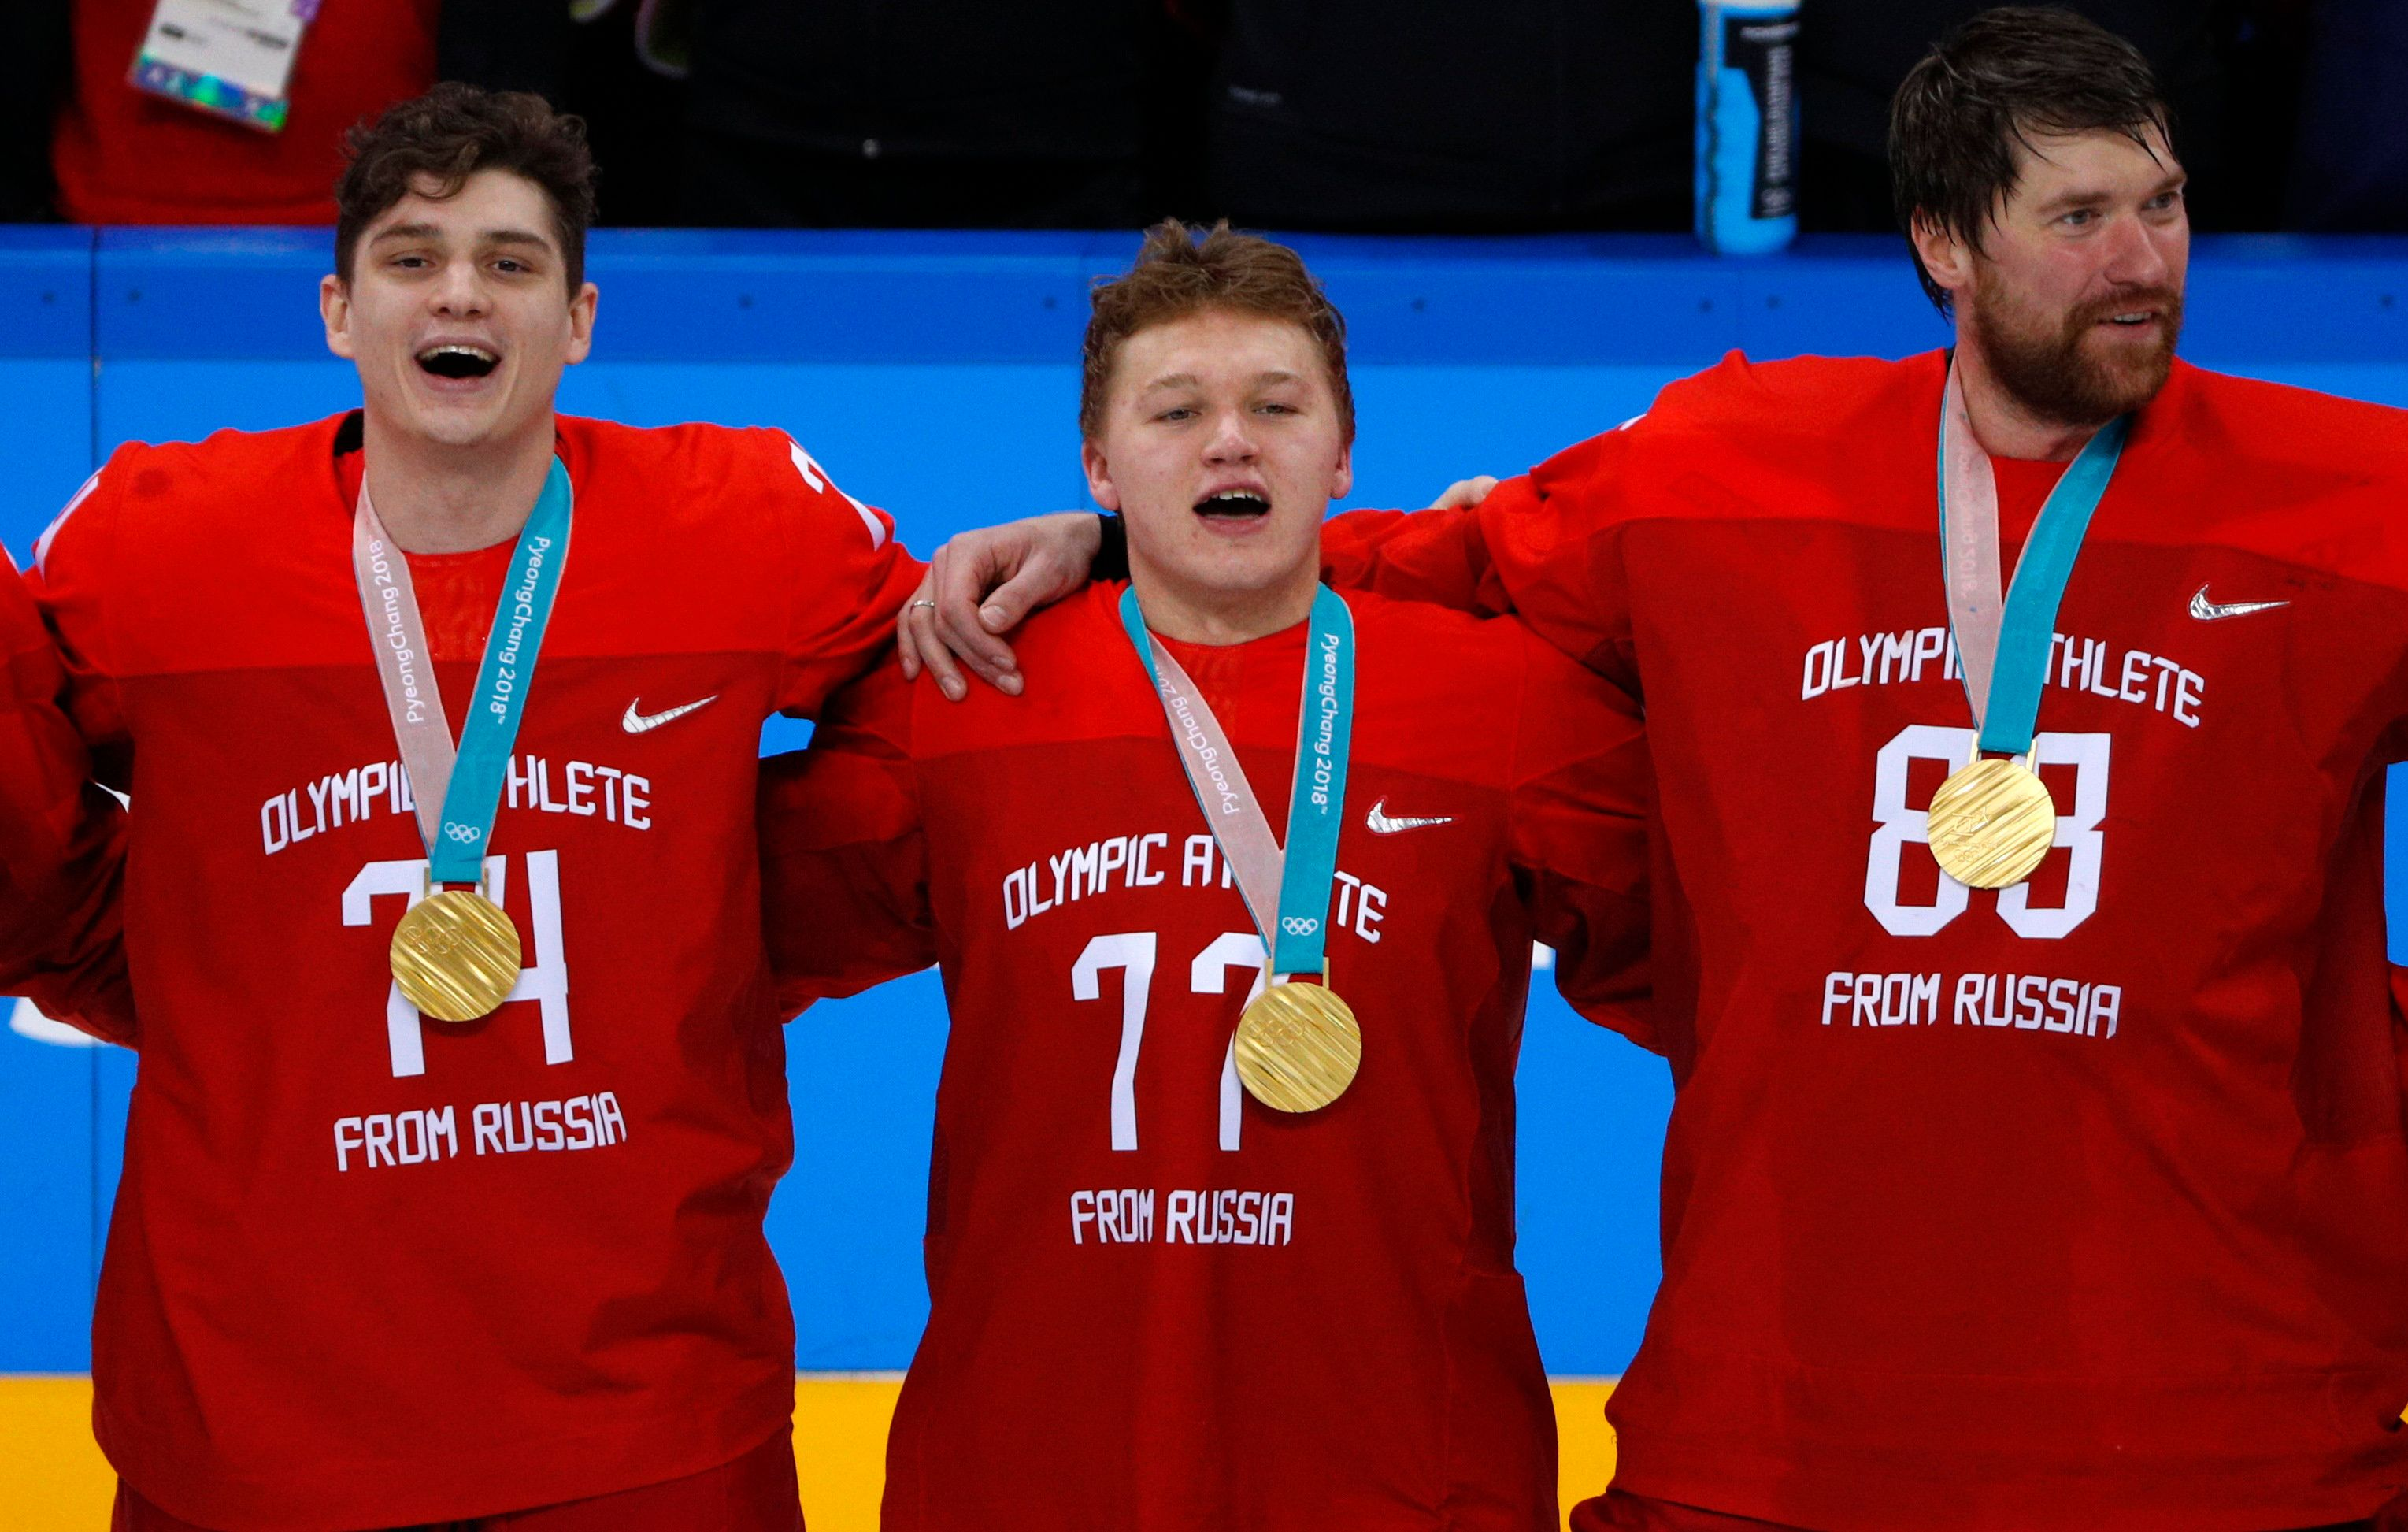 Olympic champions of Russia - the best sportsmen of the country